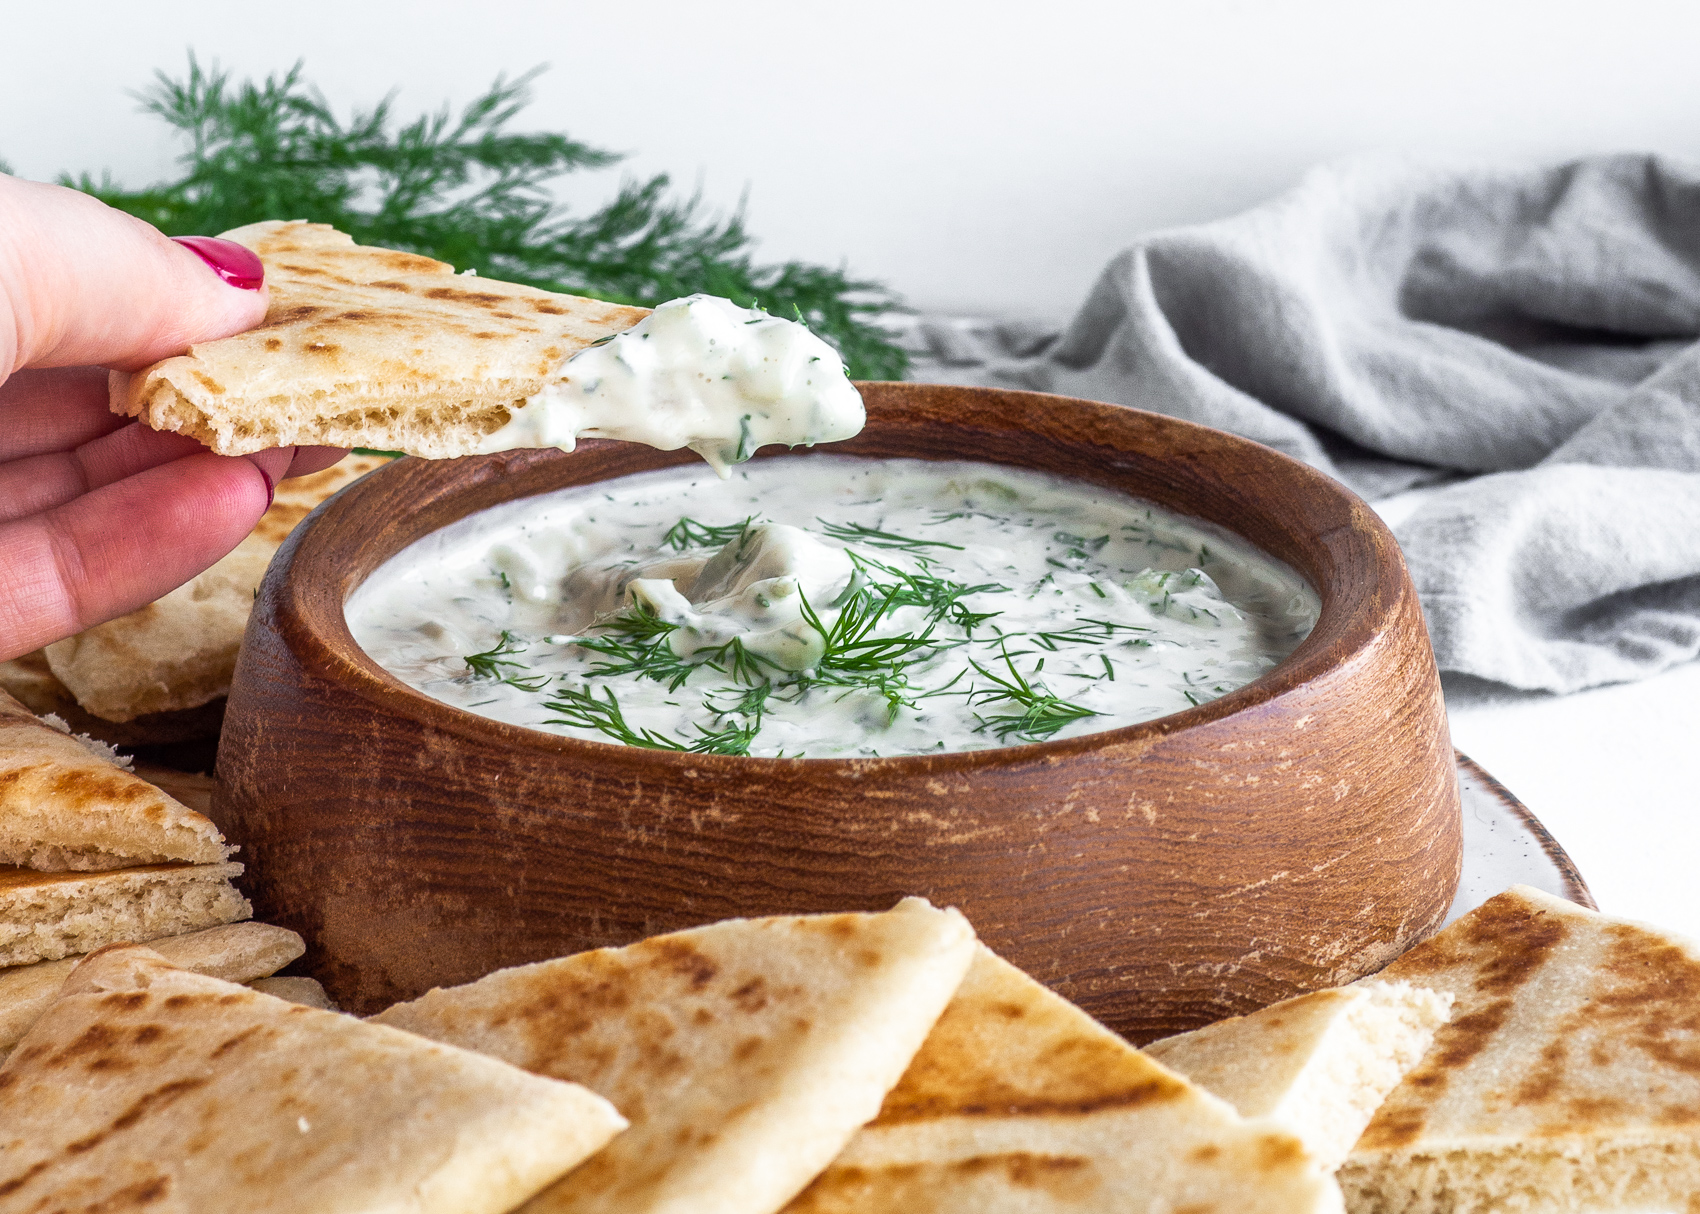 vegan tzatziki in wood bowl with hand dipping pita bread